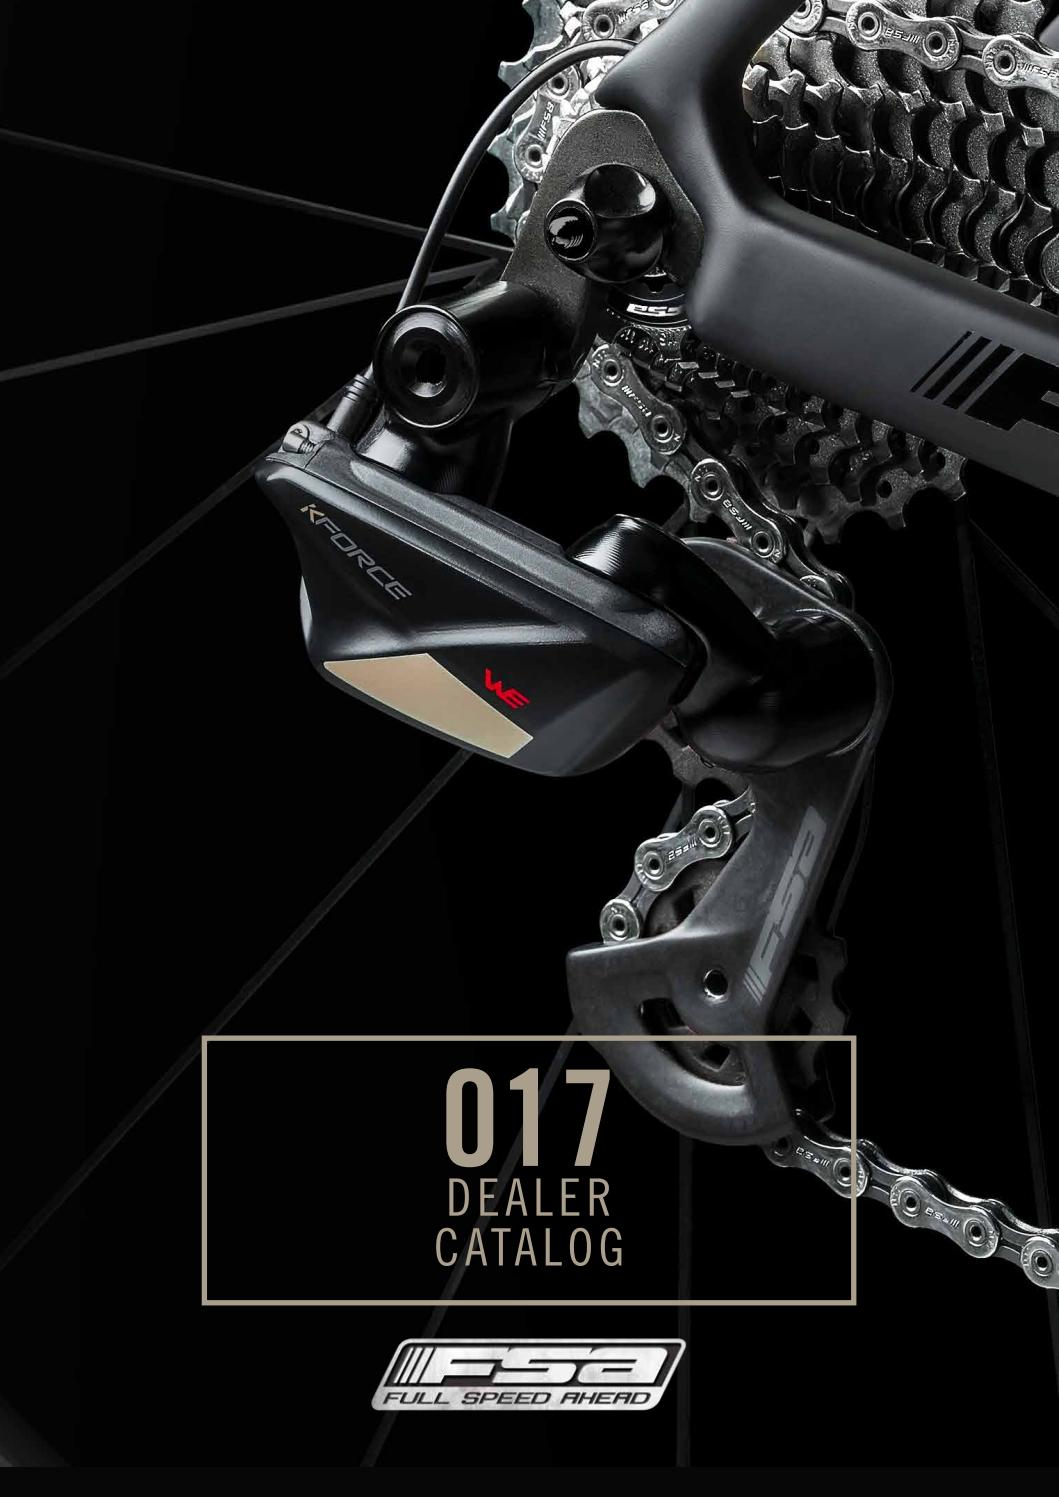 quick-release seat post clamp Satin strength Heat treated for extra strength For a 28.6mm seat finish for look and feel Made from 6061 alloy